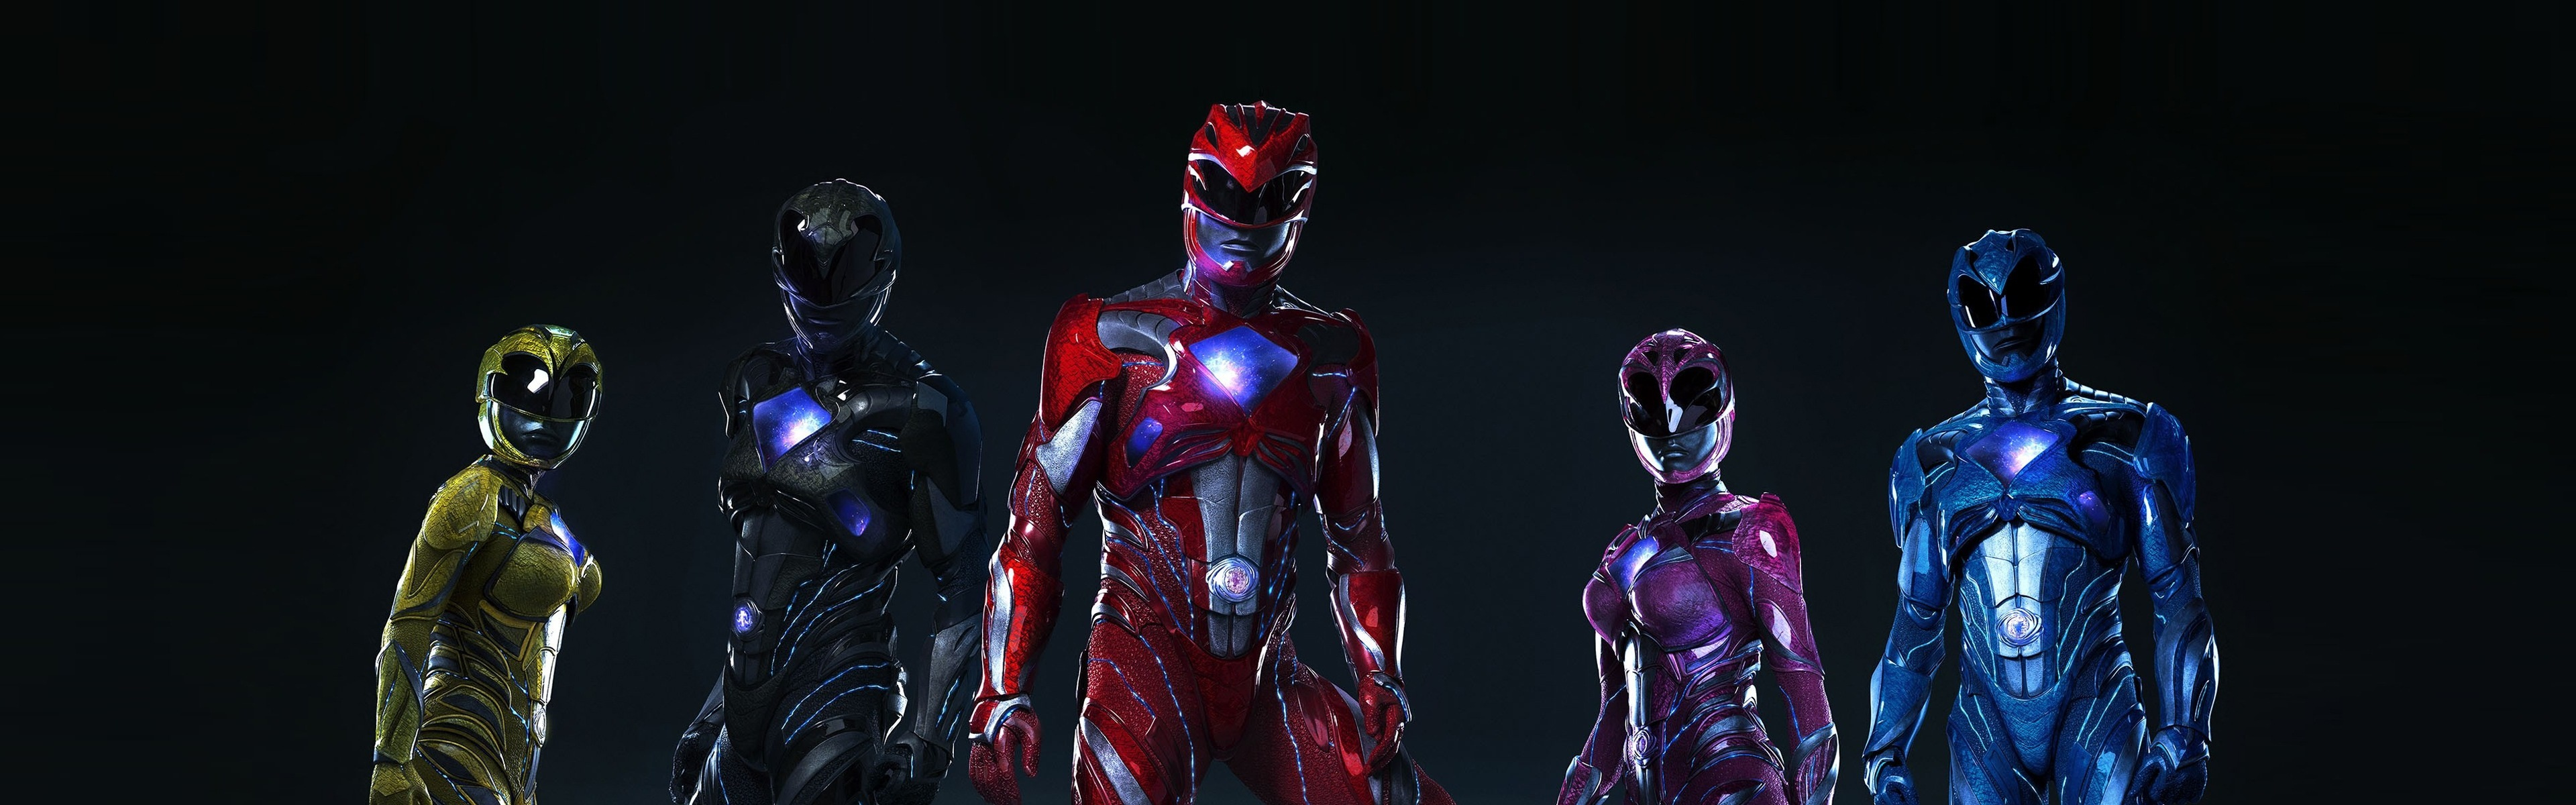 Wallpaper Power Rangers 2017 3840x2160 Uhd 4k Picture Image